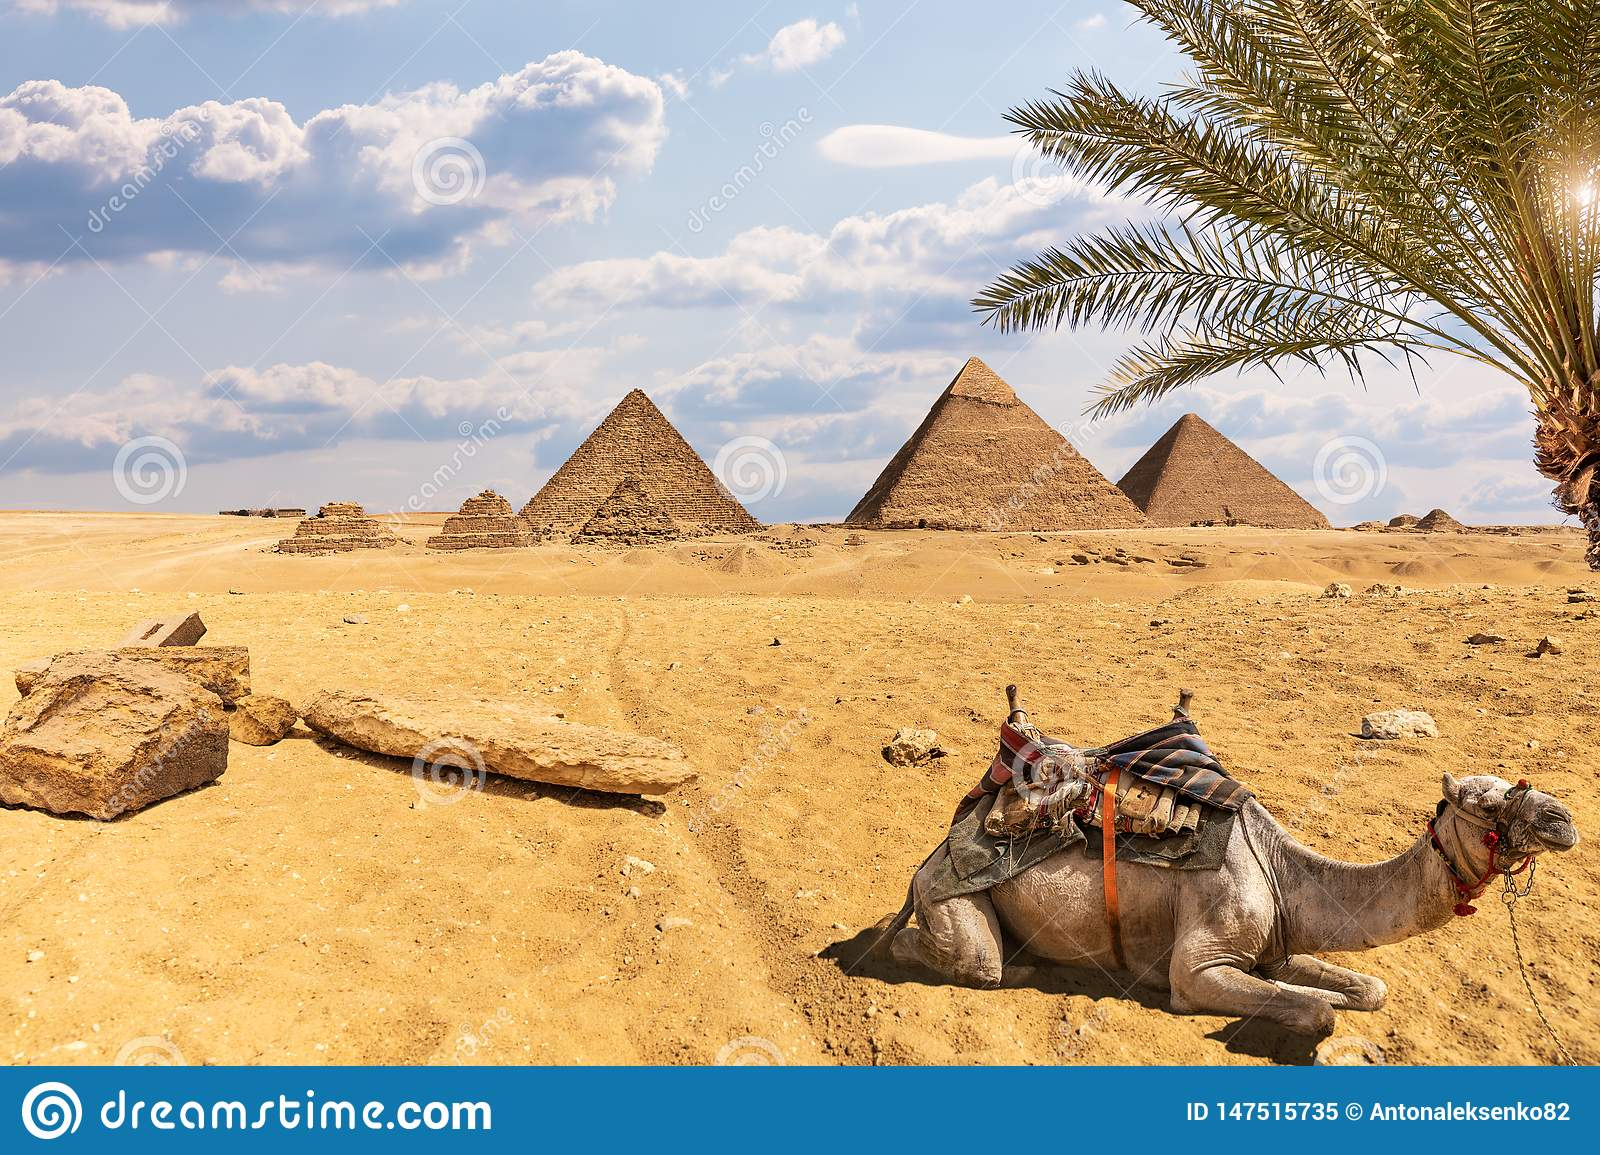 The Great Pyramids: Desert Of Giza Scenery With A Camel And